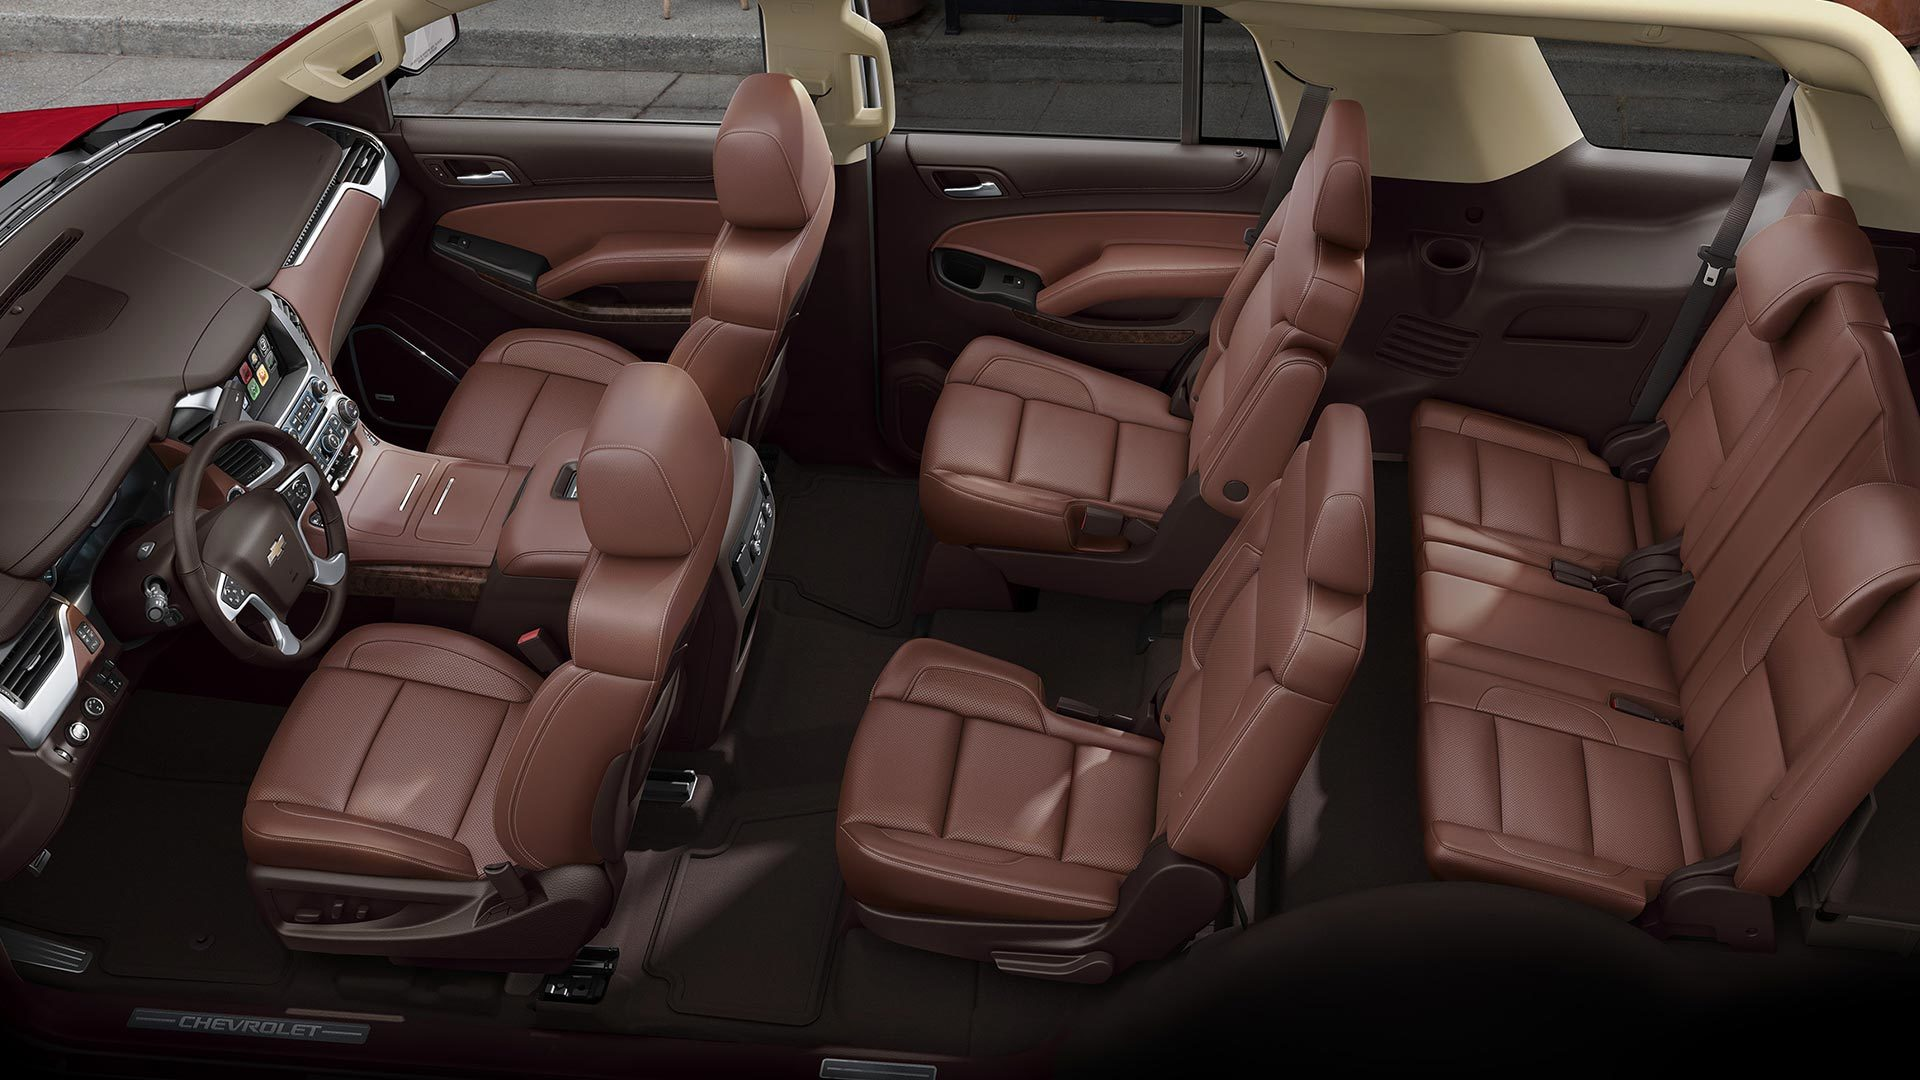 2016 Tahoe comparison seating capacity